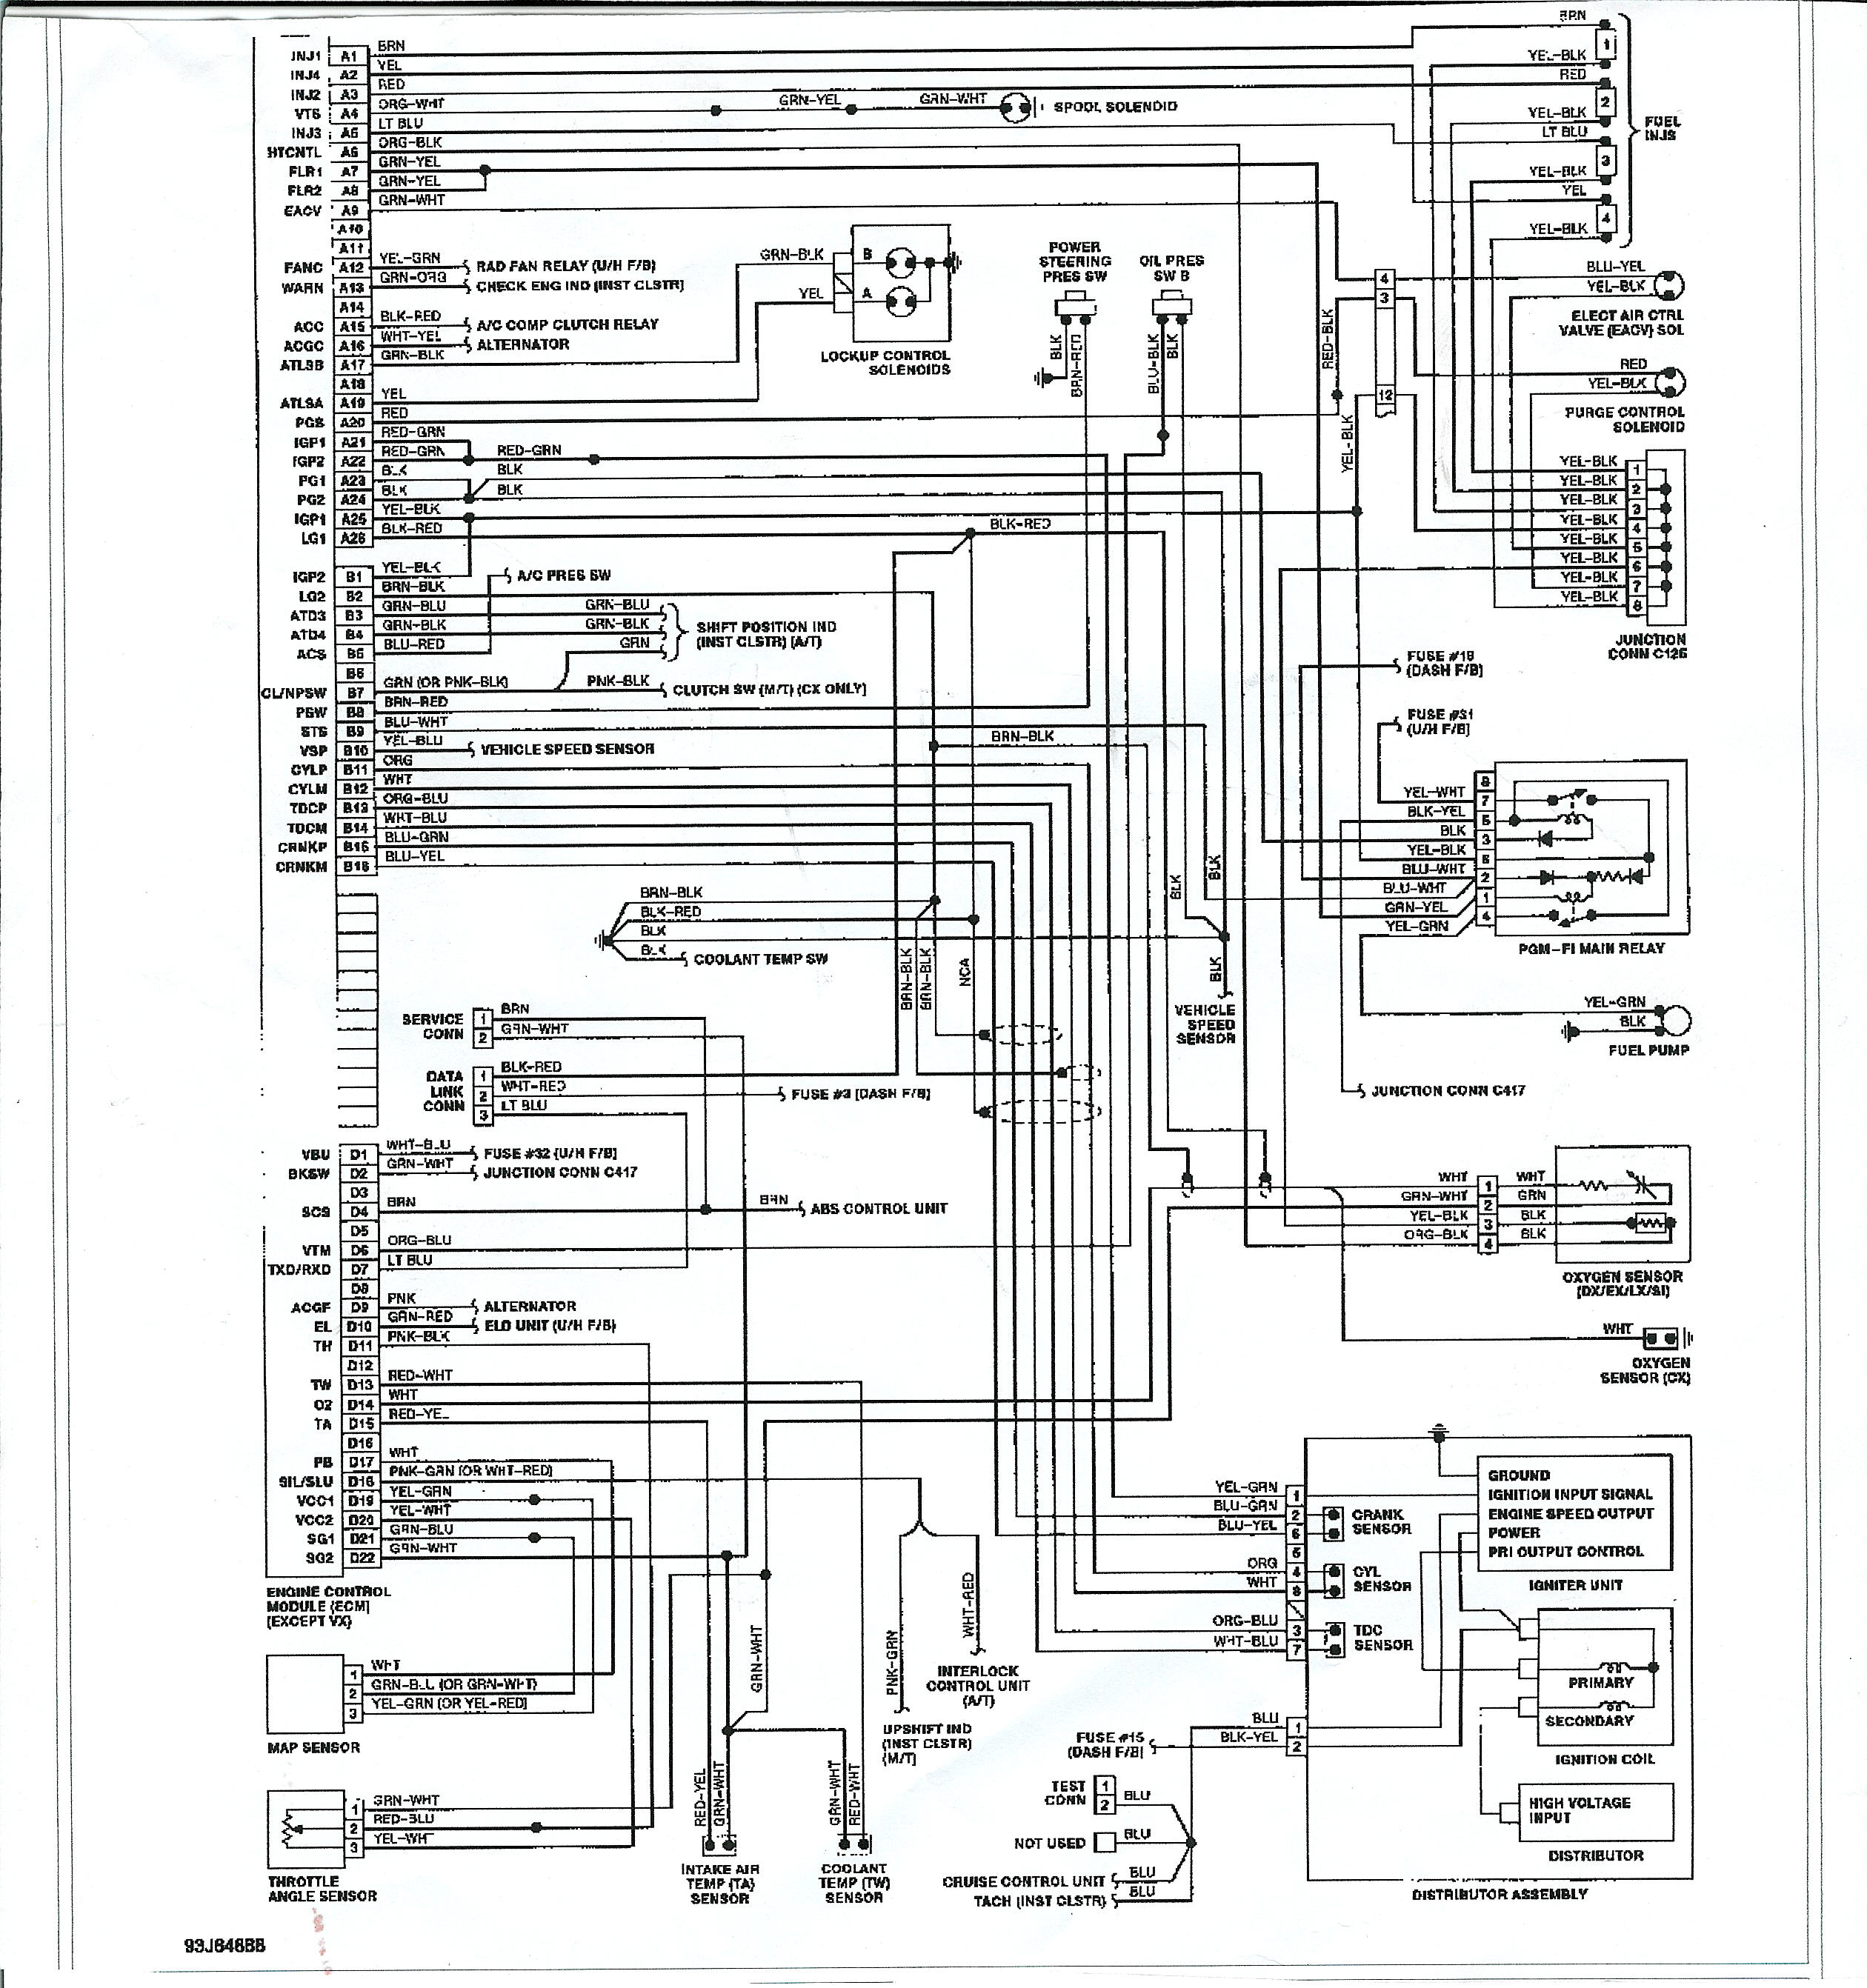 2004 honda civic ecu wiring diagram : 35 wiring diagram images, Wiring diagram